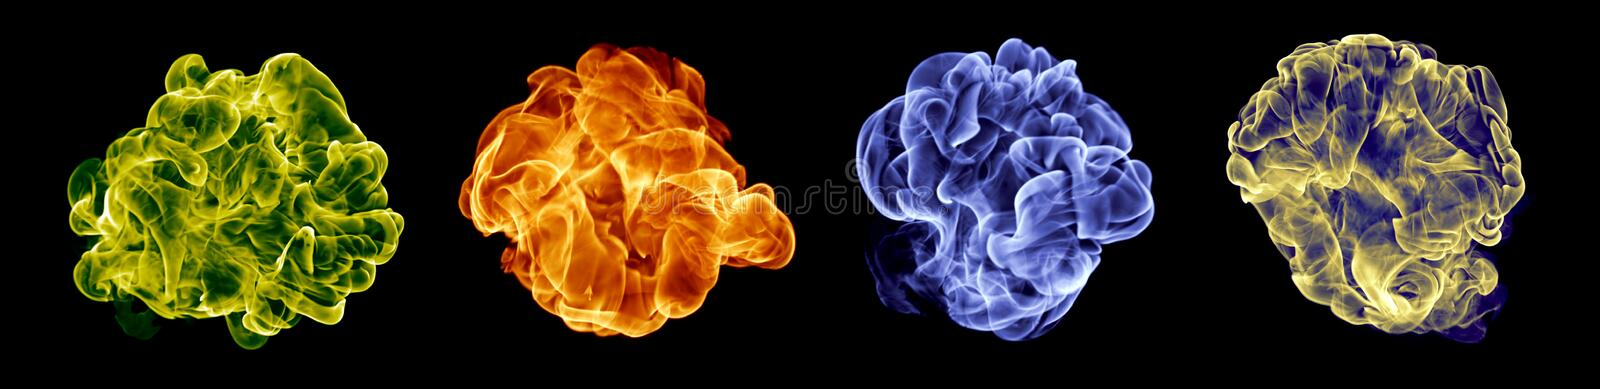 Color fire set royalty free stock photography